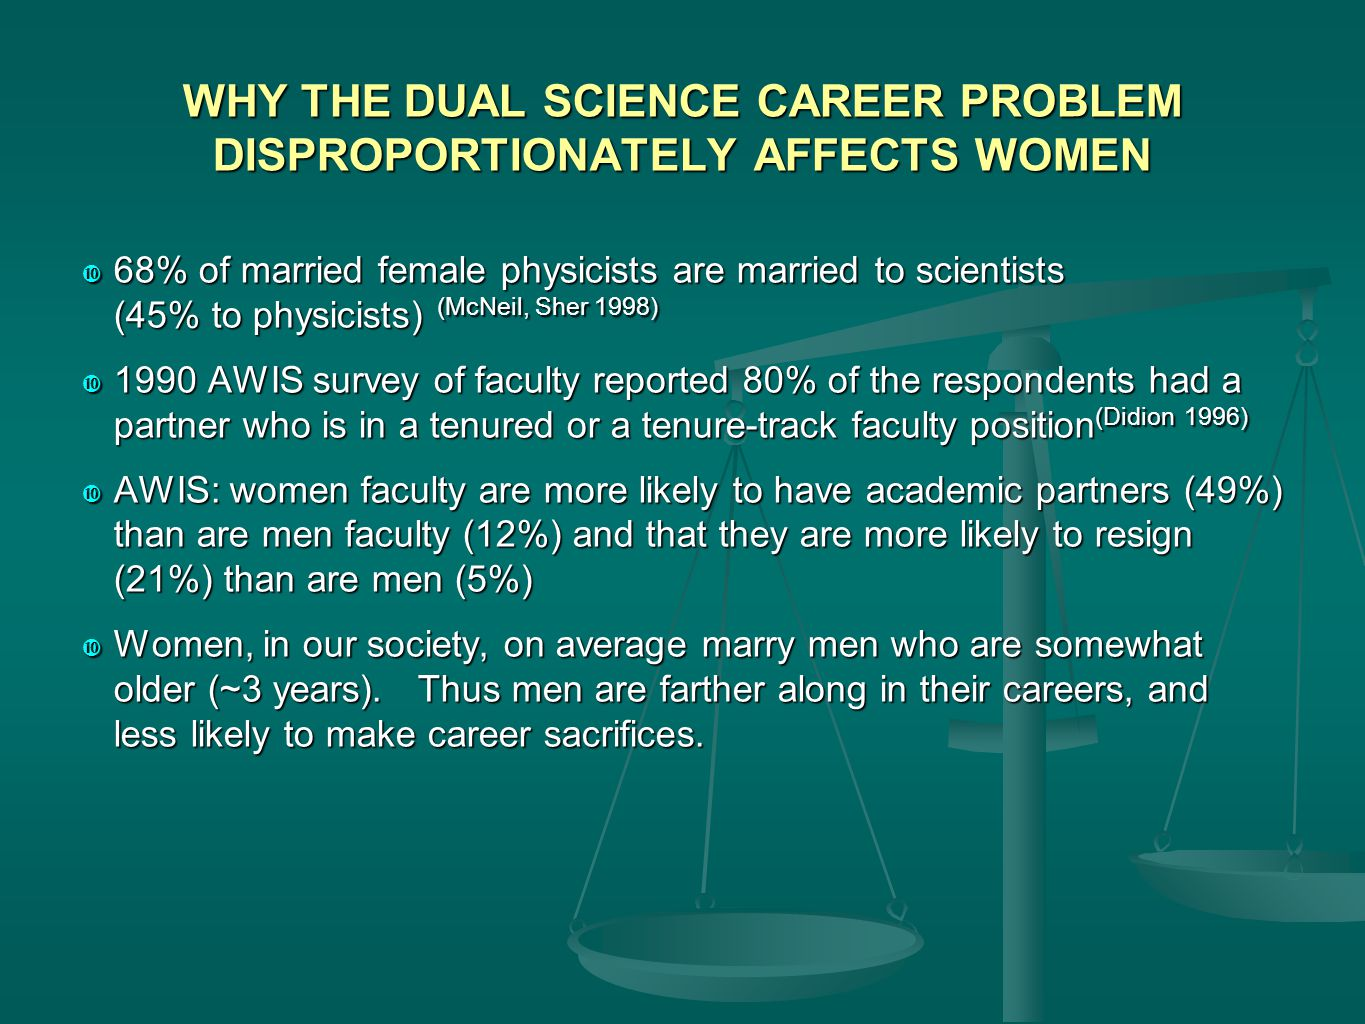 WHY THE DUAL SCIENCE CAREER PROBLEM DISPROPORTIONATELY AFFECTS WOMEN  68% of married female physicists are married to scientists (45% to physicists) (McNeil, Sher 1998)  1990 AWIS survey of faculty reported 80% of the respondents had a partner who is in a tenured or a tenure-track faculty position (Didion 1996)  AWIS: women faculty are more likely to have academic partners (49%) than are men faculty (12%) and that they are more likely to resign (21%) than are men (5%)  Women, in our society, on average marry men who are somewhat older (~3 years).